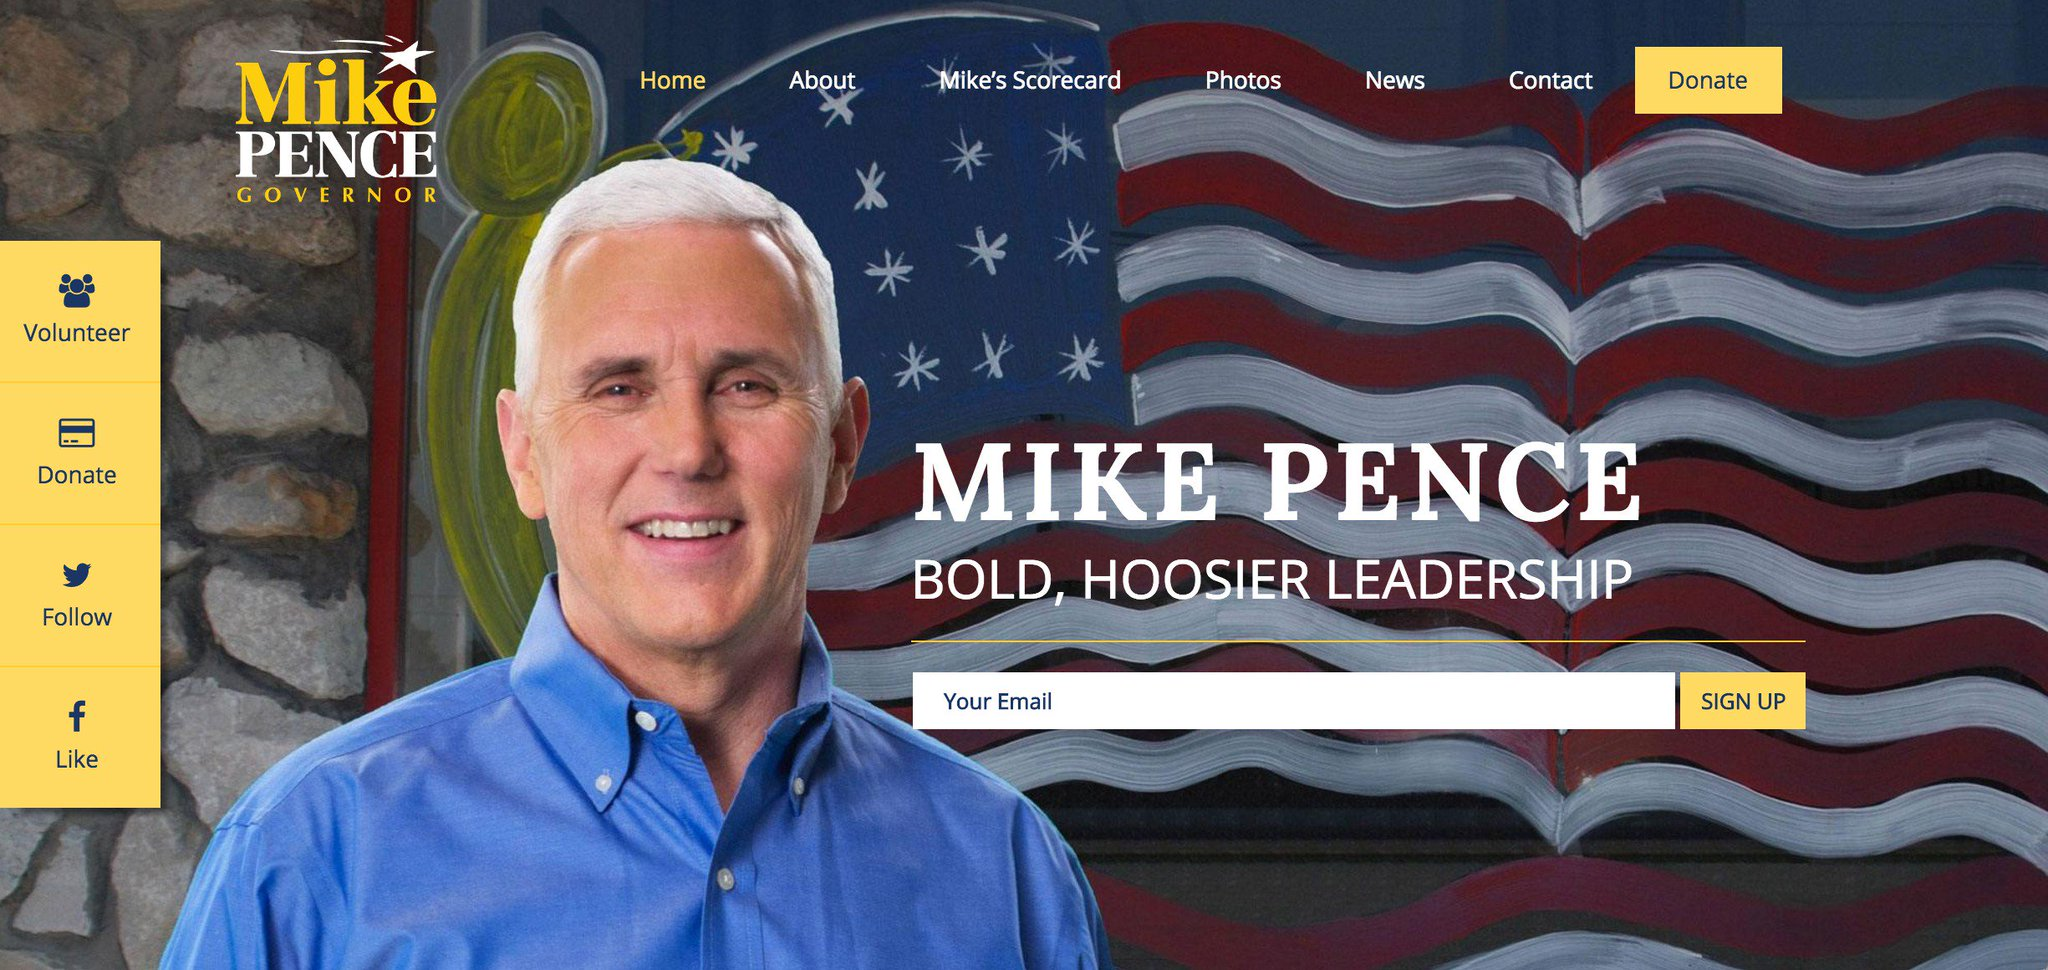 6) Have Pence update HIS political home page, or at least redirect to a Trump-related page https://t.co/zBXa70YUUv